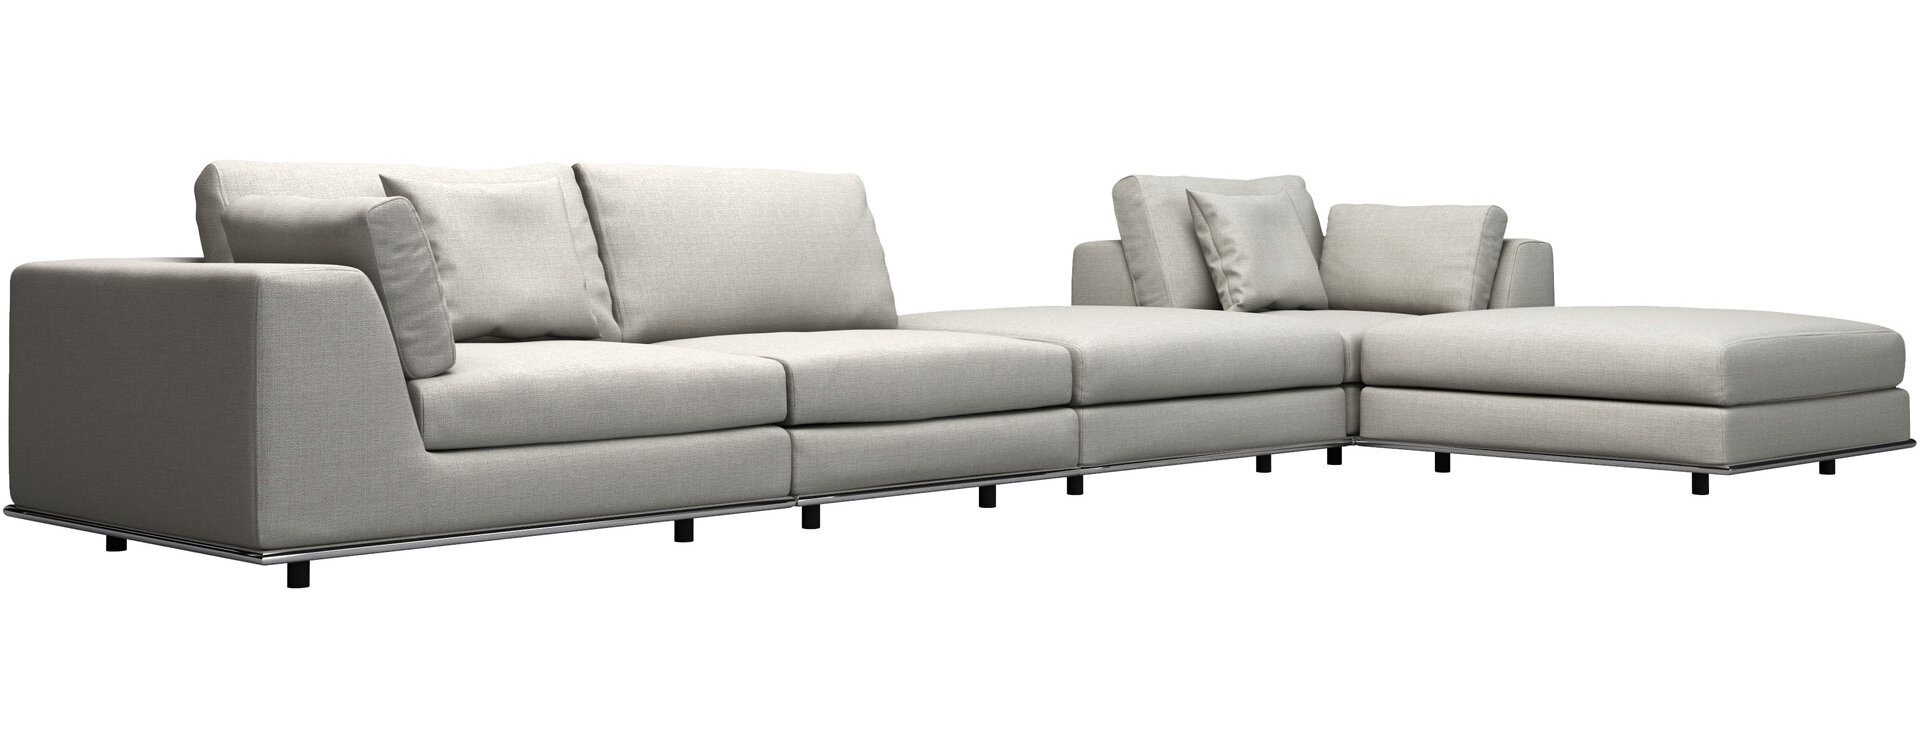 sofas broyhill collections corner wayside item piece sofa sof furniture laramie lsg sectional